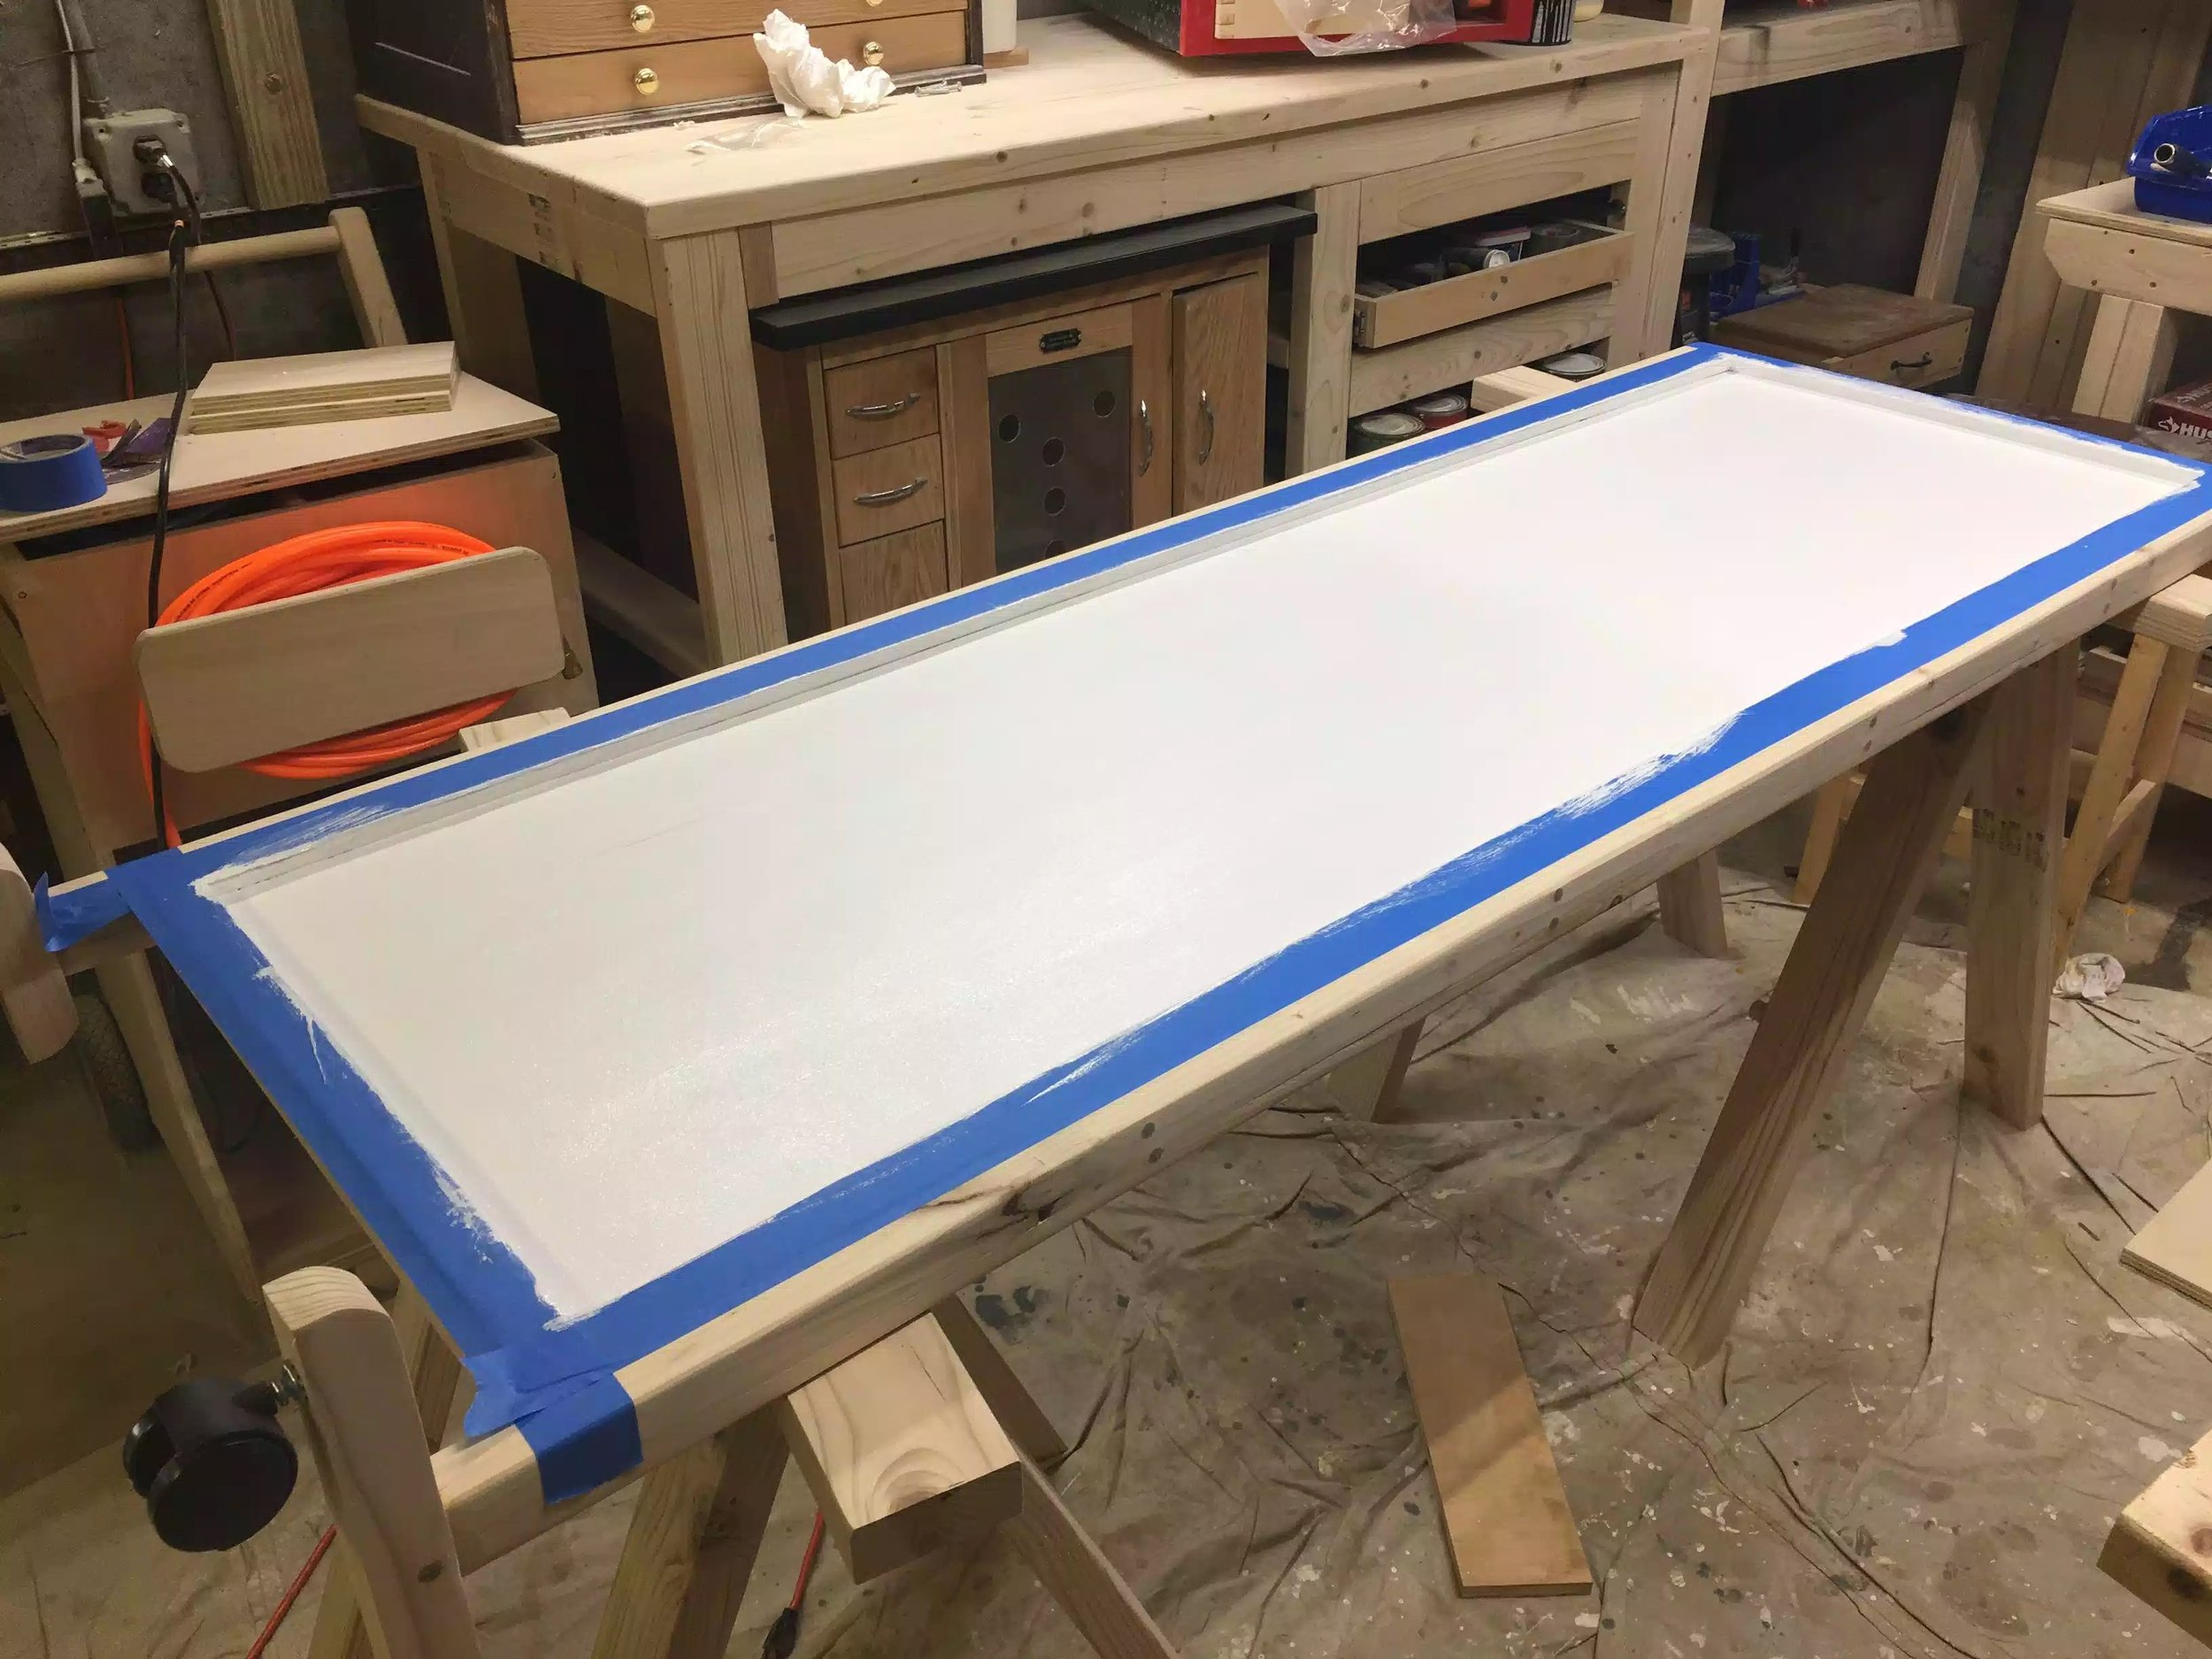 Another picture of the primed panel